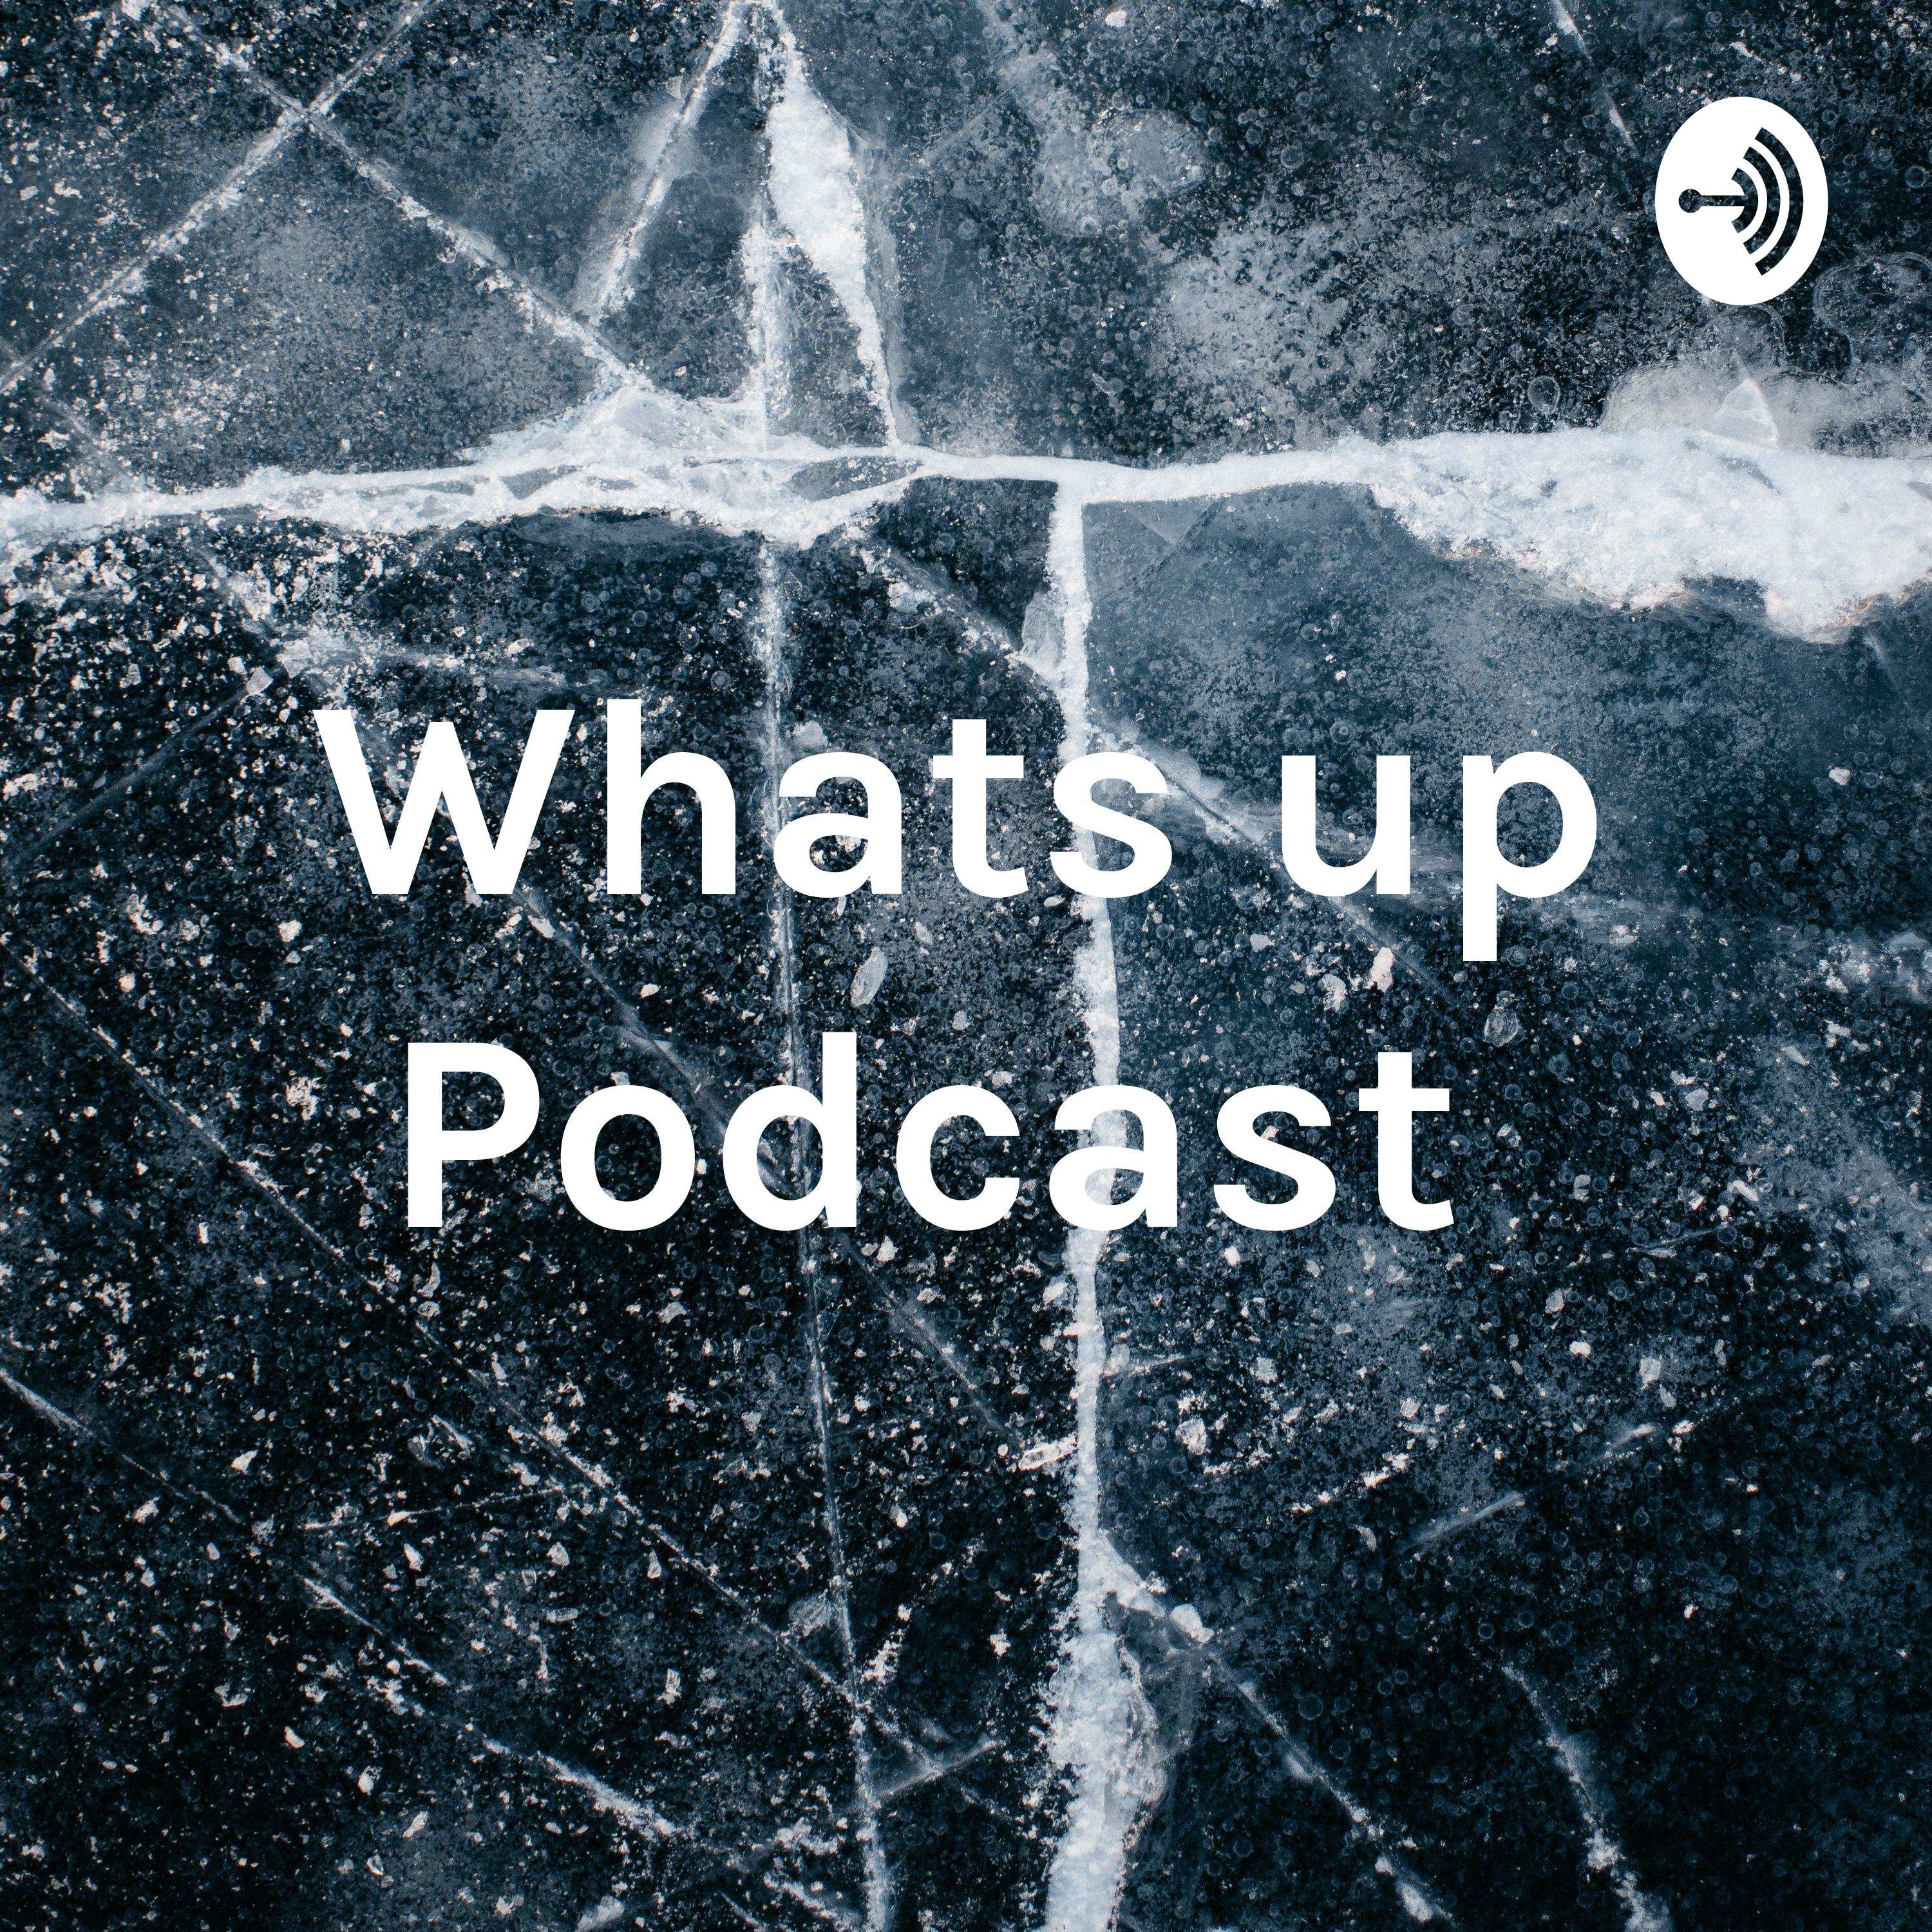 What's up podcast #3